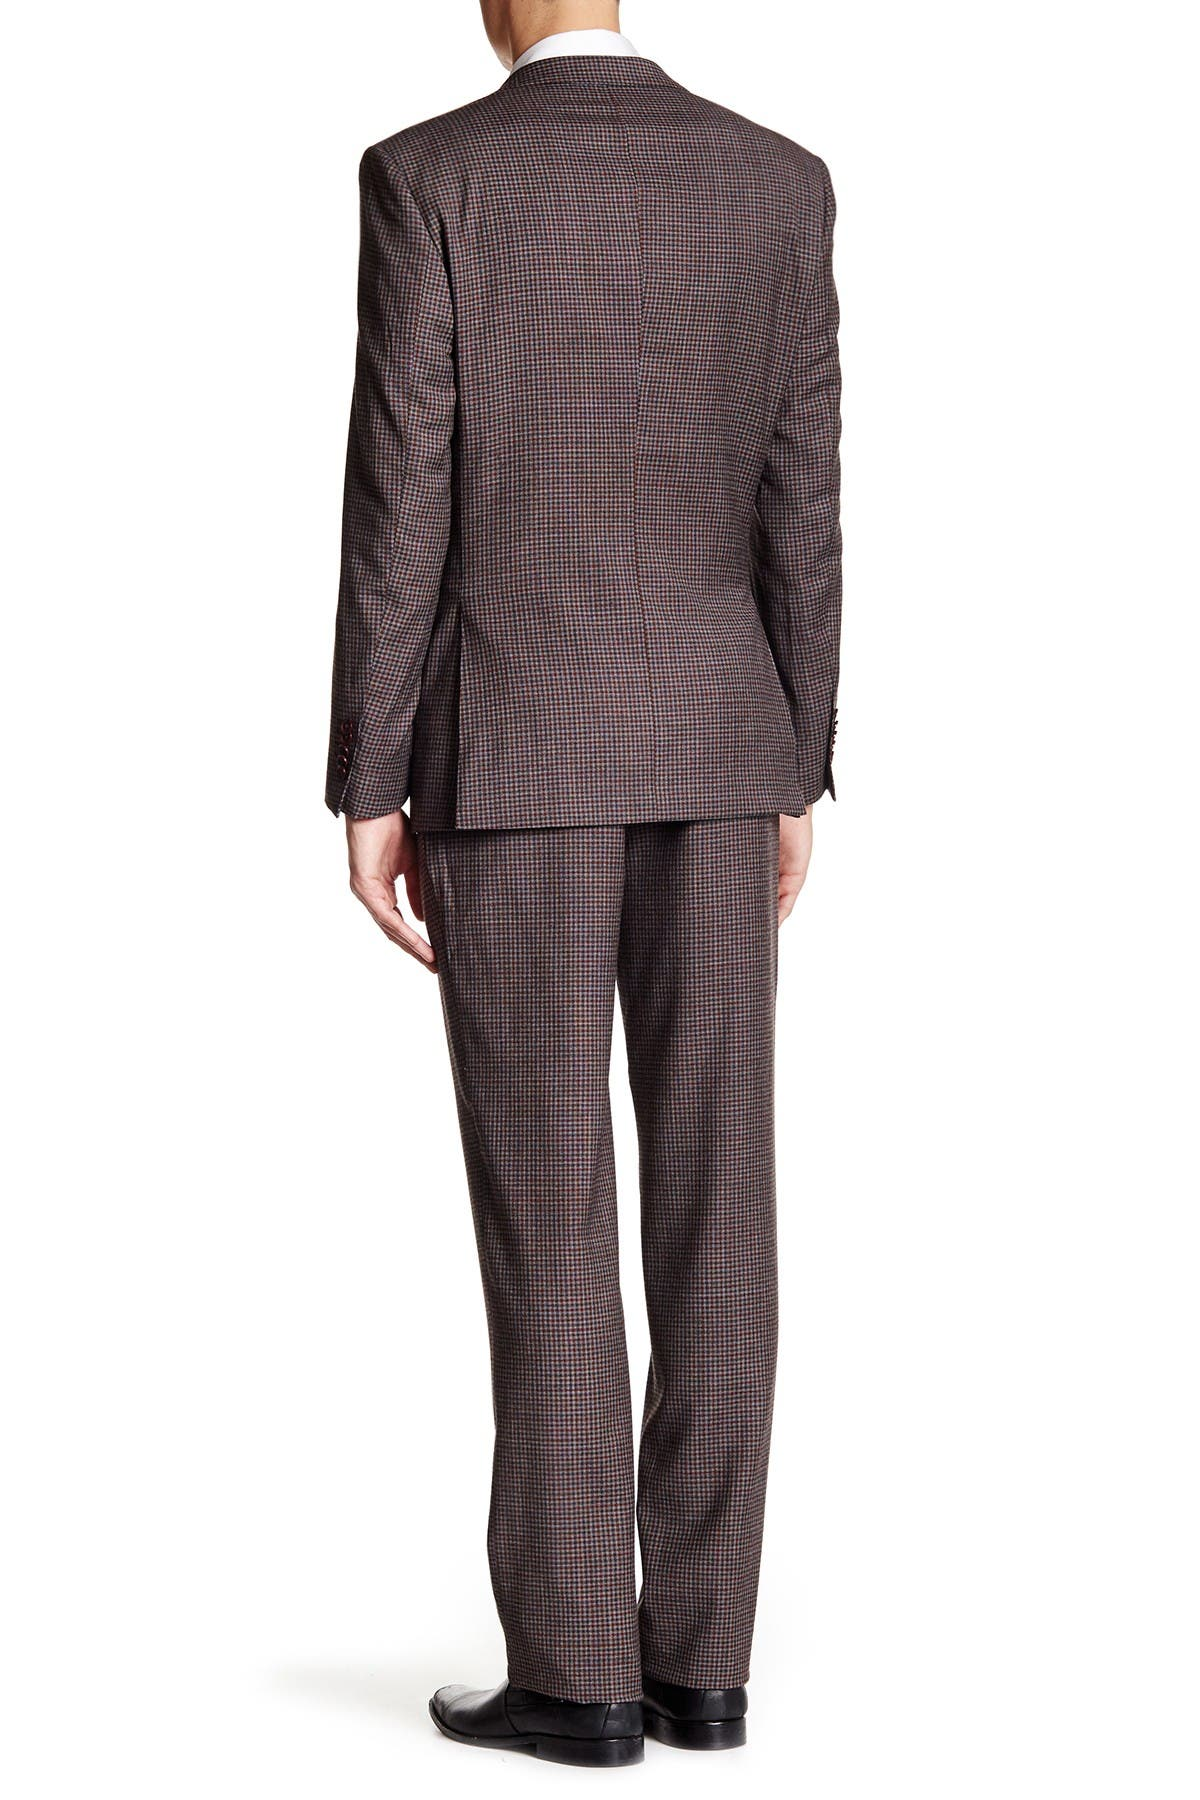 Image of English Laundry Check Two Button Notch Lapel Wool Trim Fit Suit